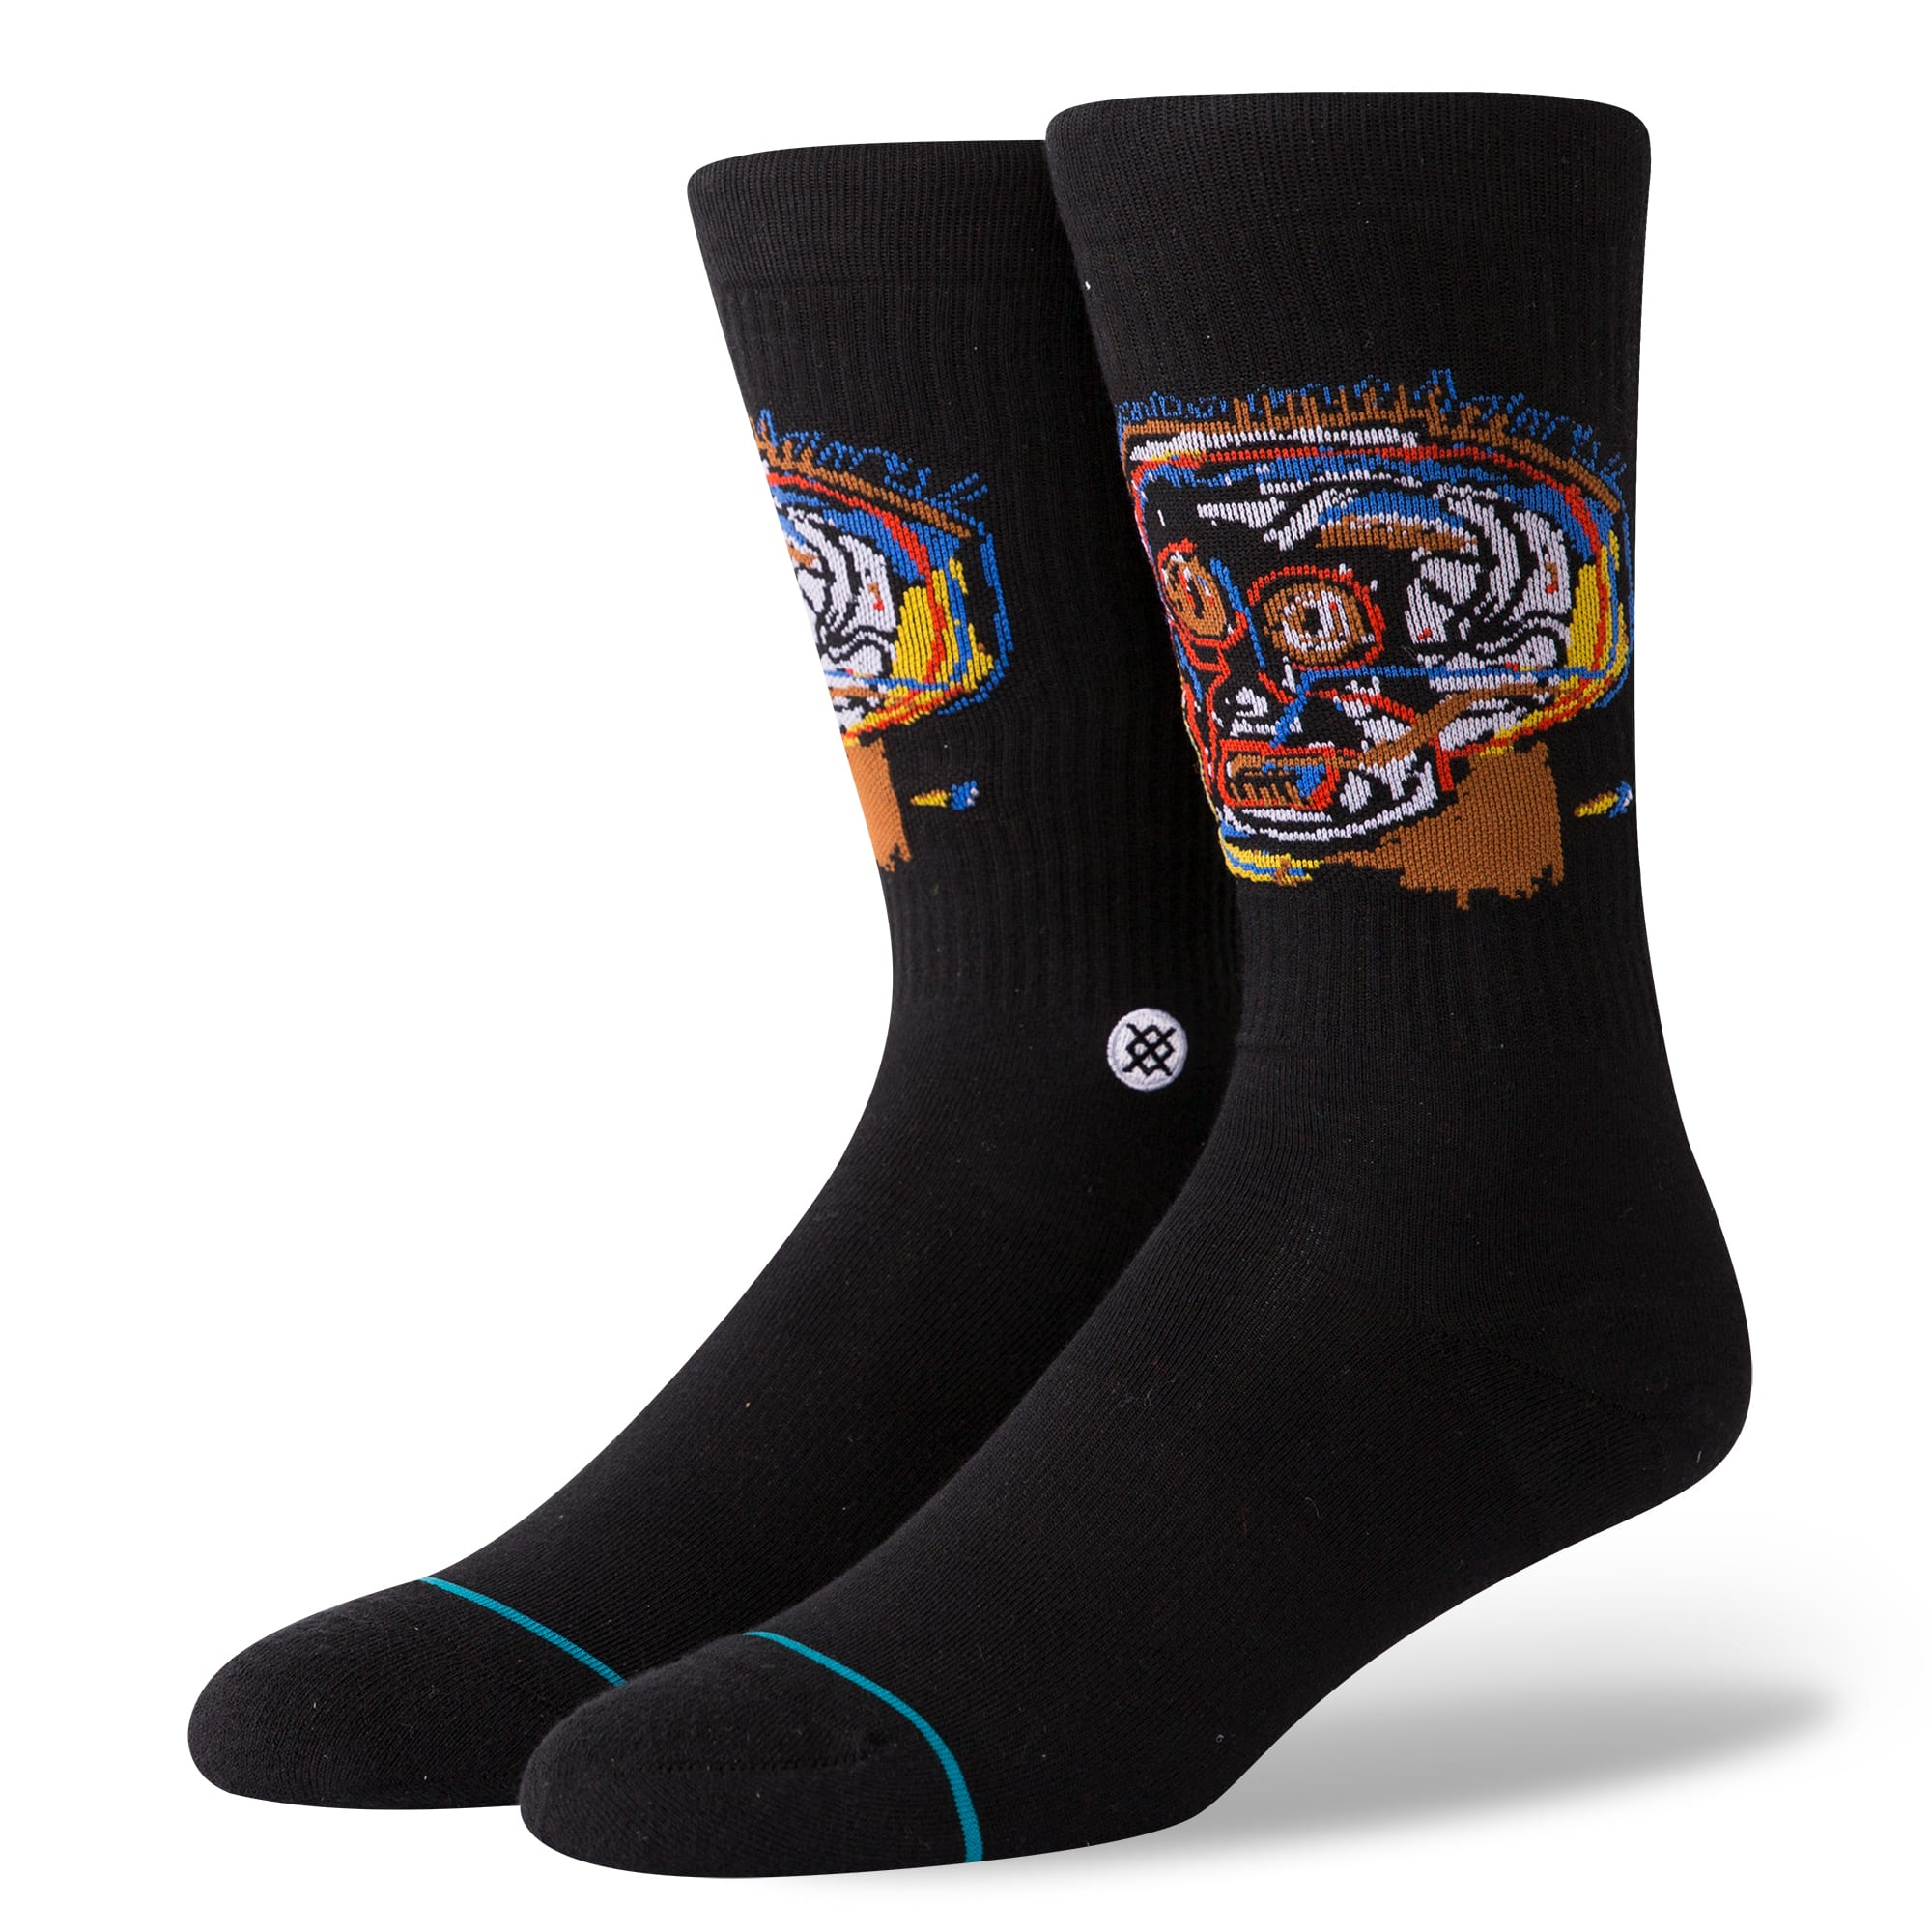 Stance Has Released A New Collection Of Jean-Michel Basquiat-Themed Socks